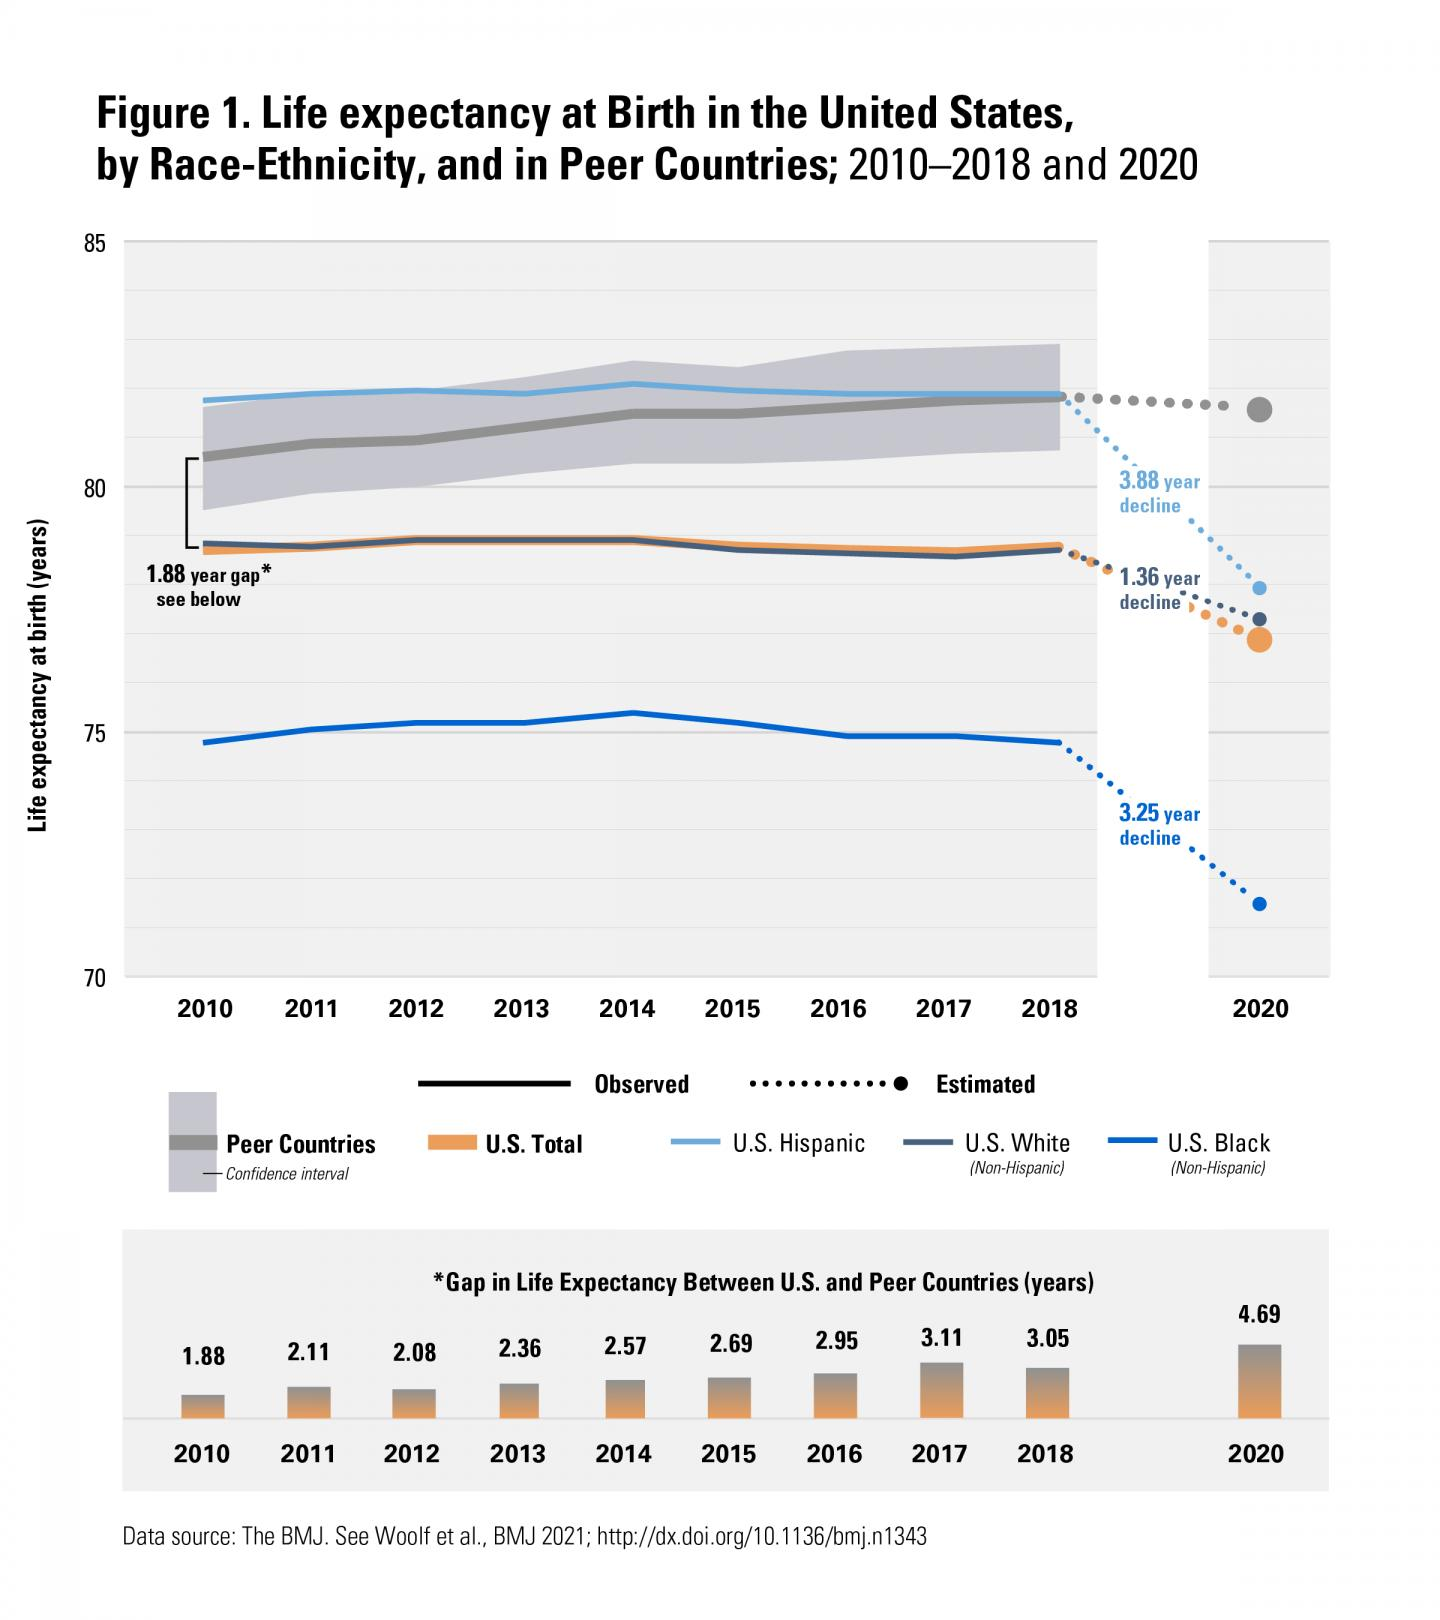 Figure 1, Life expectancy at Birth in the United States, by Race-Ethnicity, and in Peer Countries; 2010-2018 and 2020